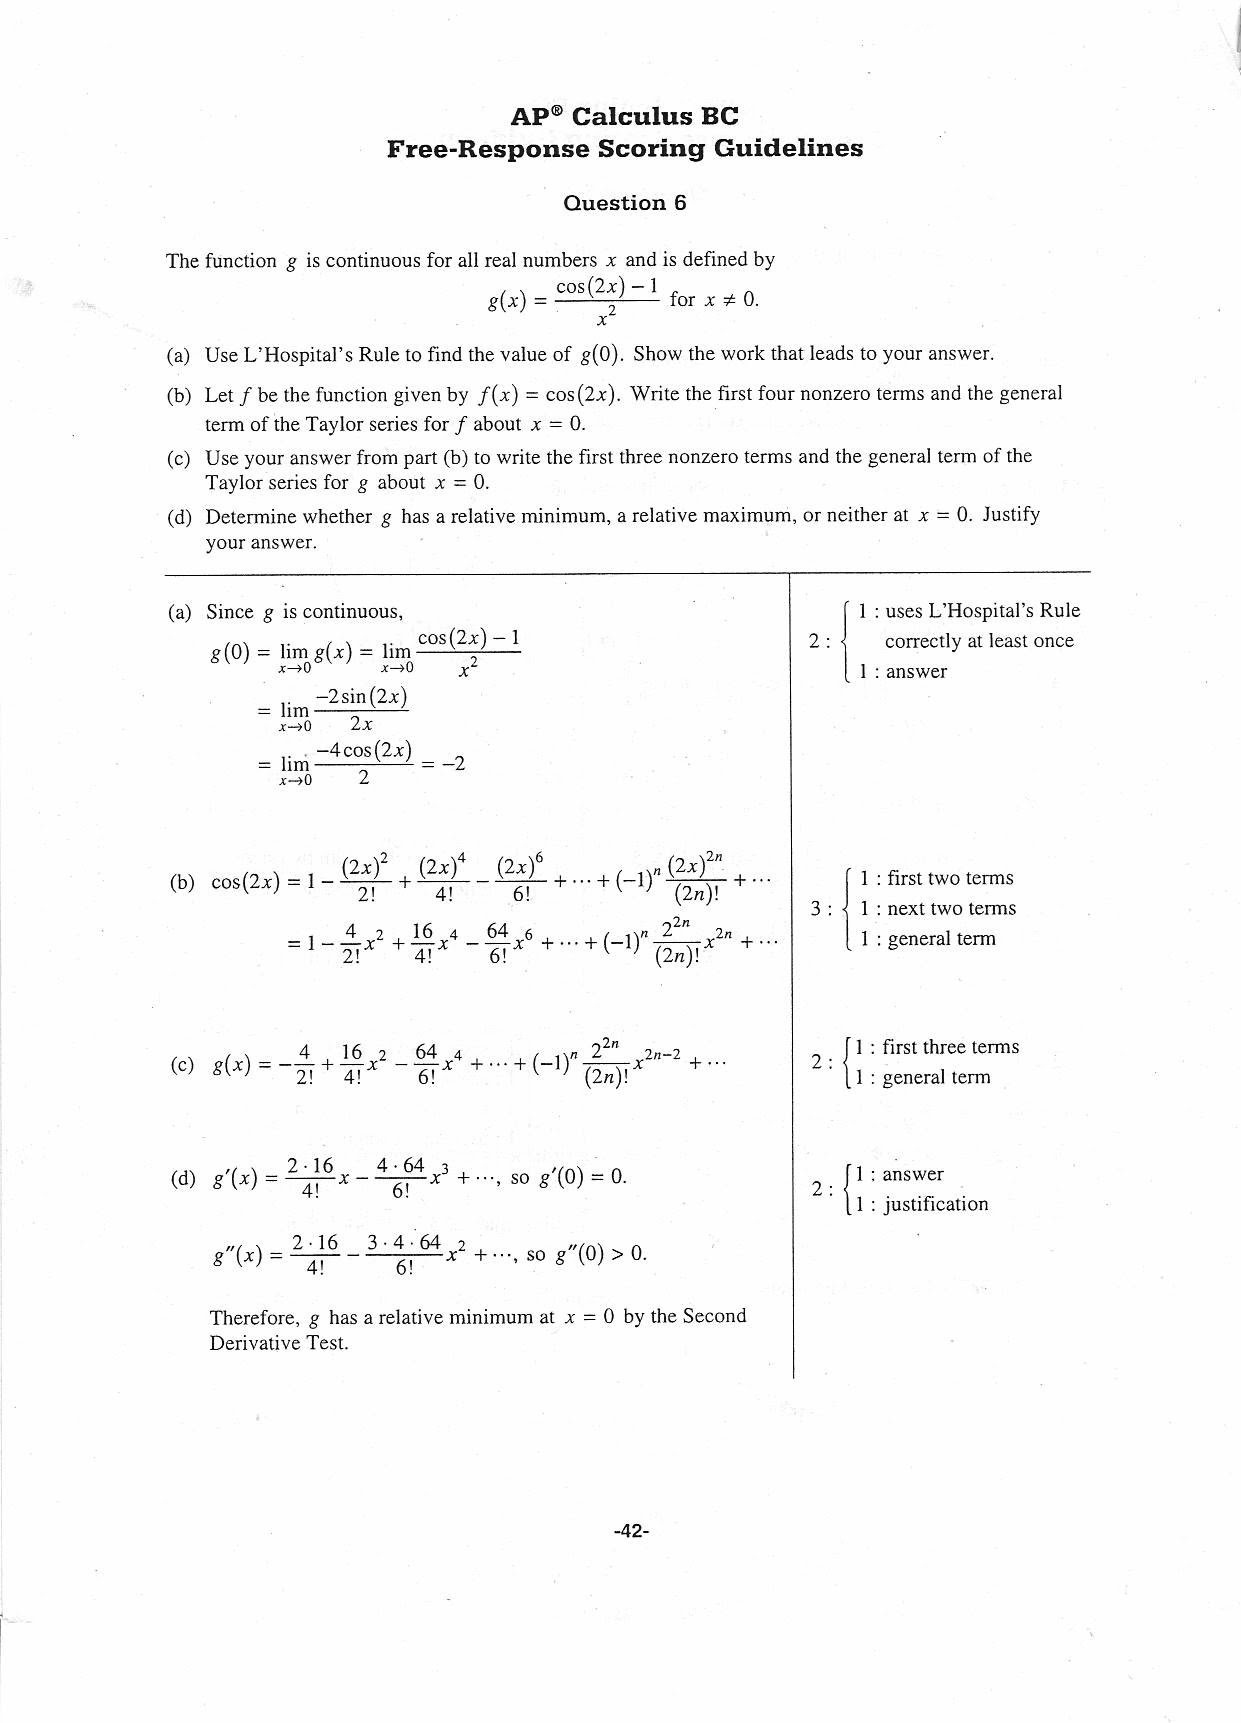 BC Calculus Practice Exam 2008 Question 6